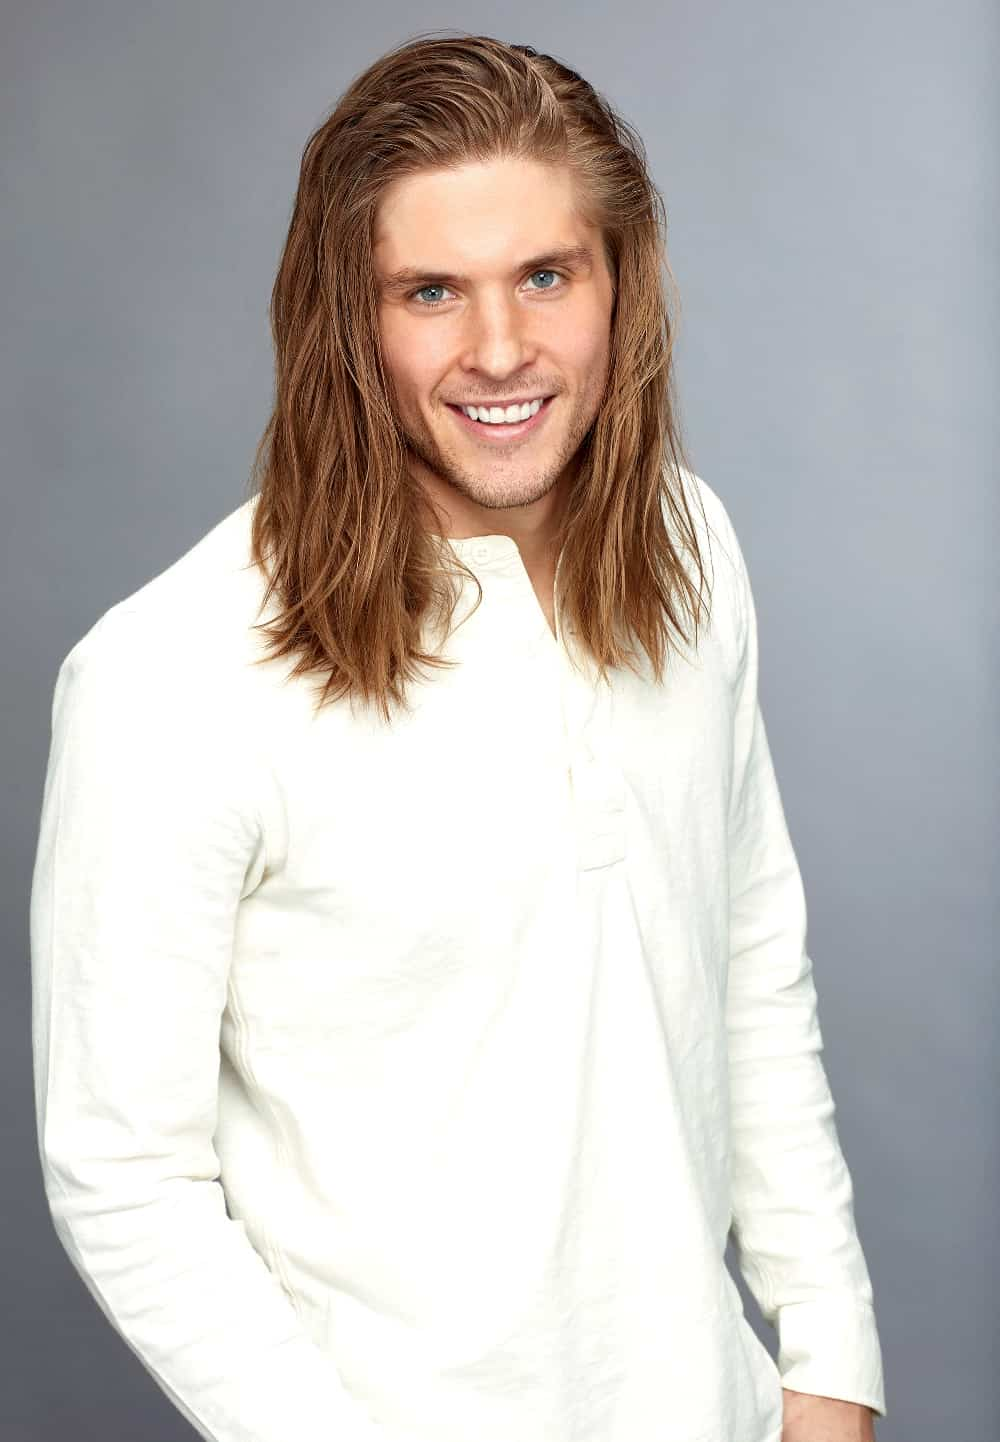 The Bachelorette Mike Renner